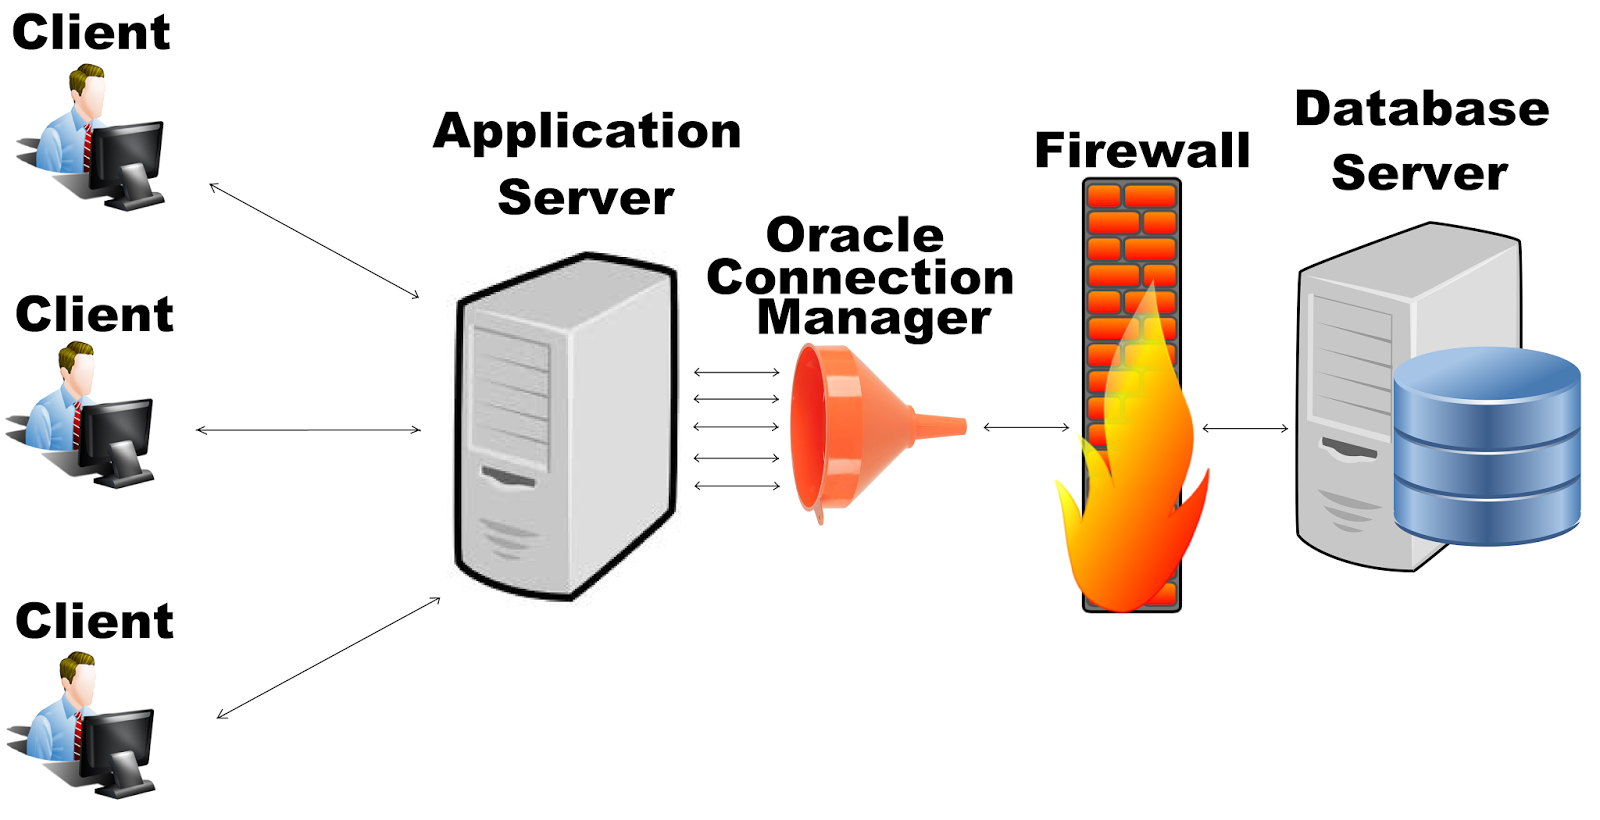 Oracle connection manager